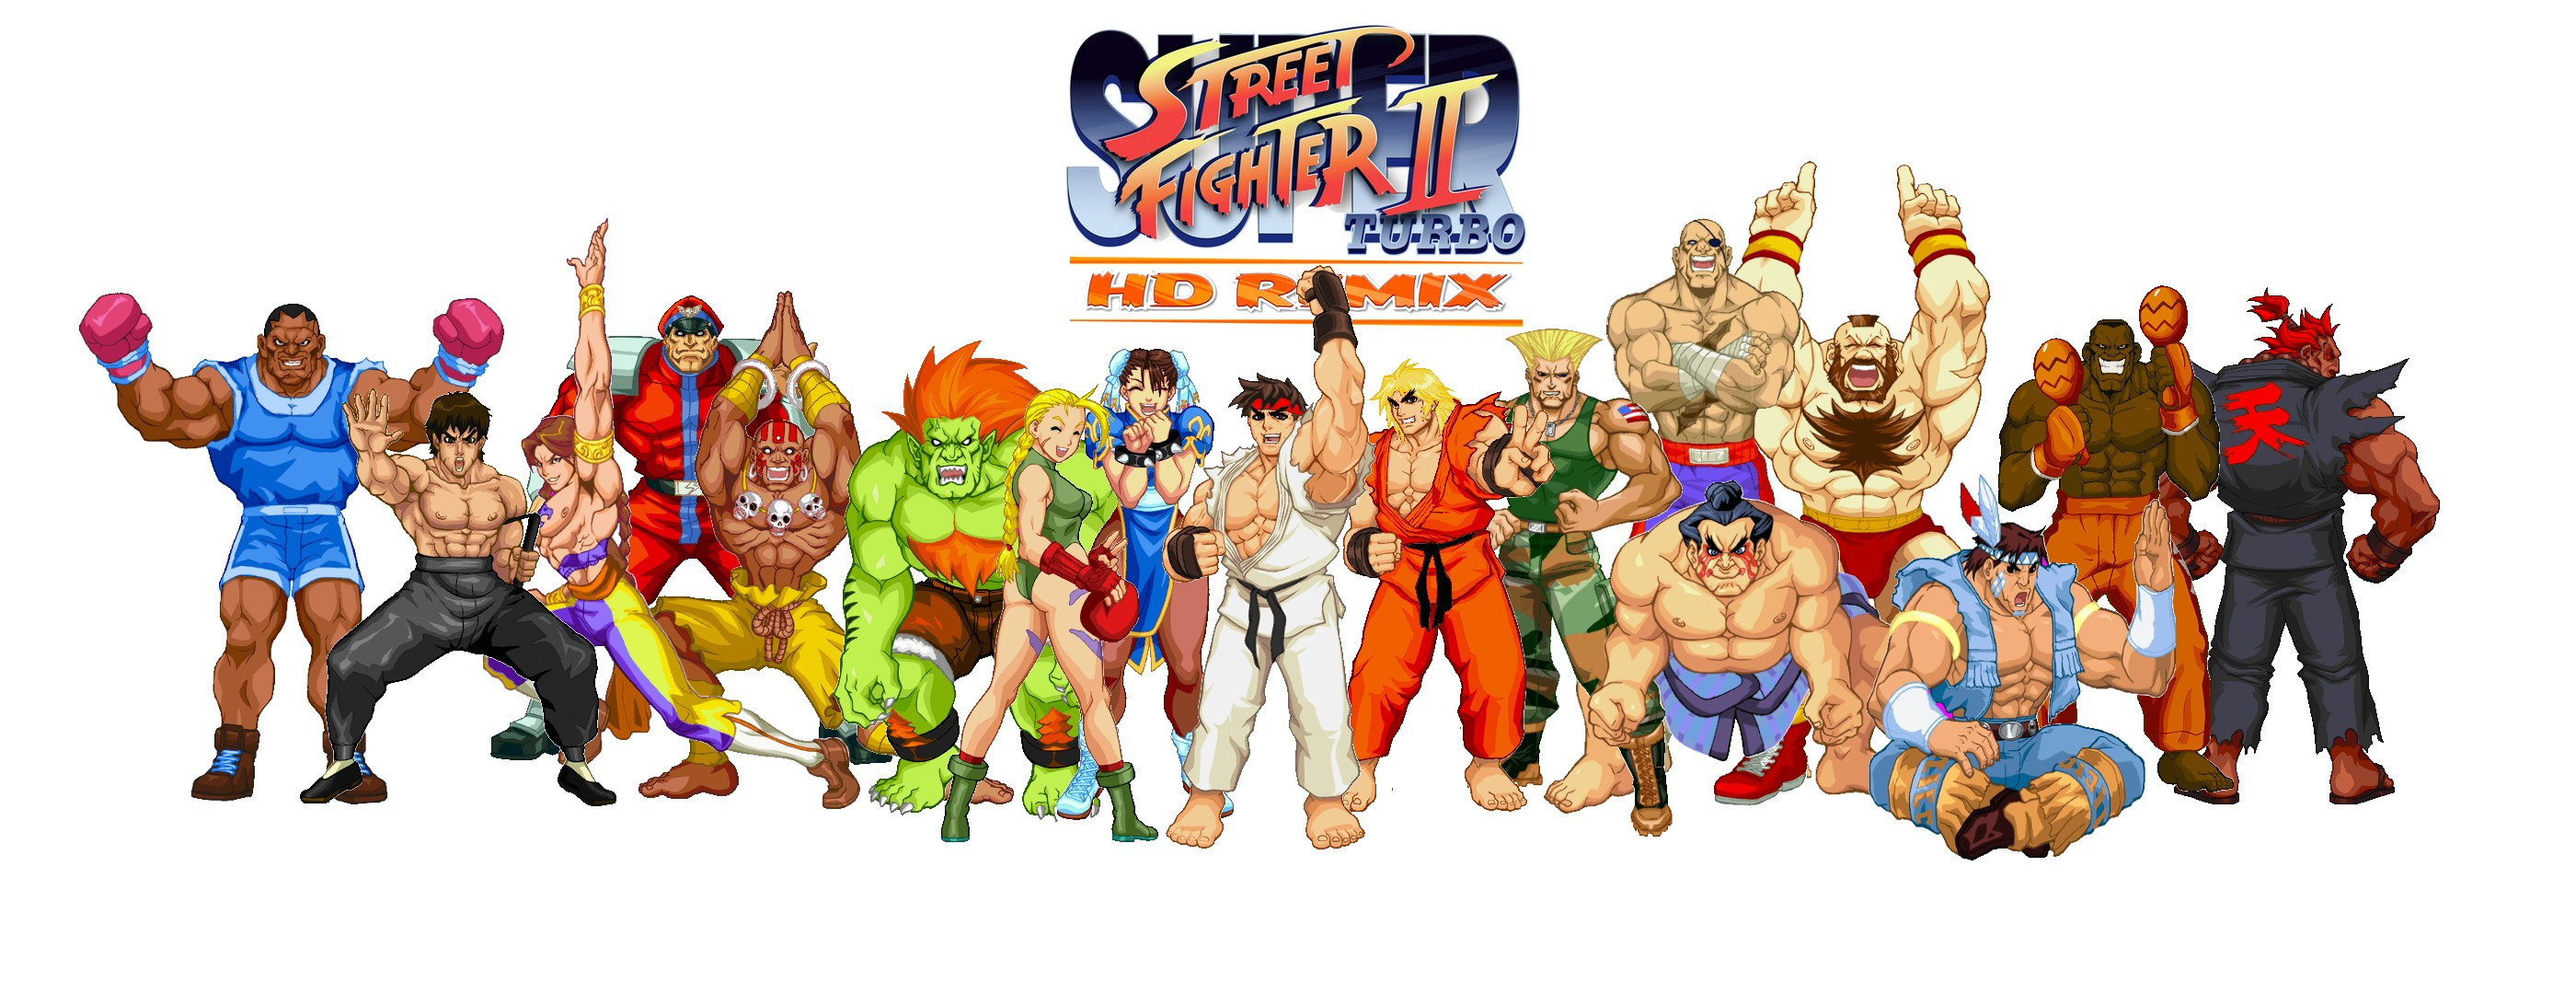 Super Street Fighter 2 turbo hd remix by juniorbunny on